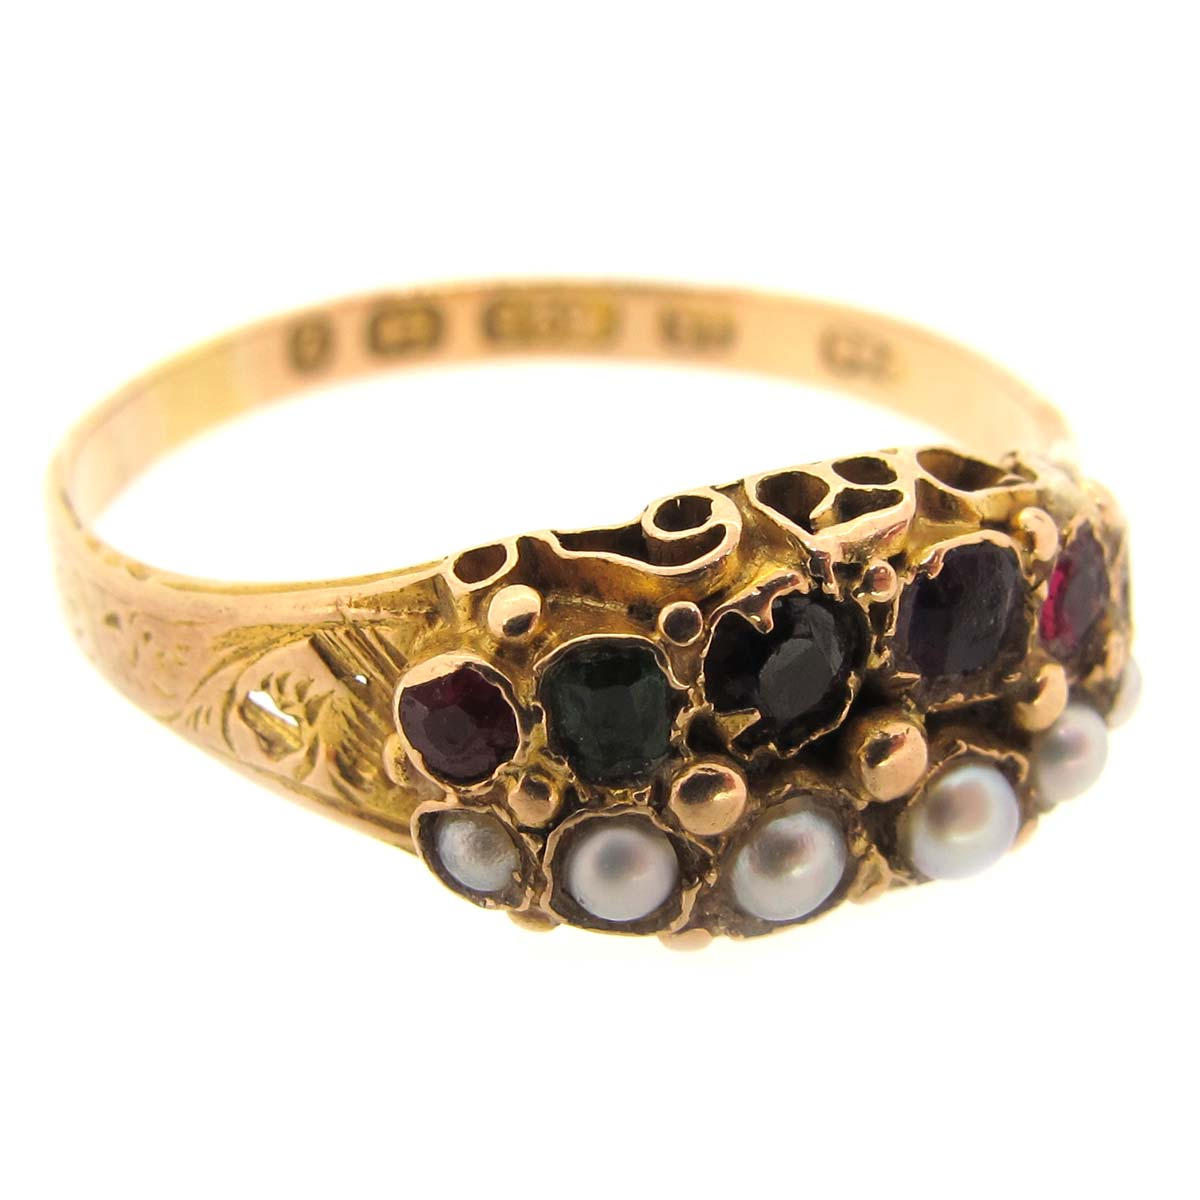 Acrostic 'REGARD' gold & multi gem ring